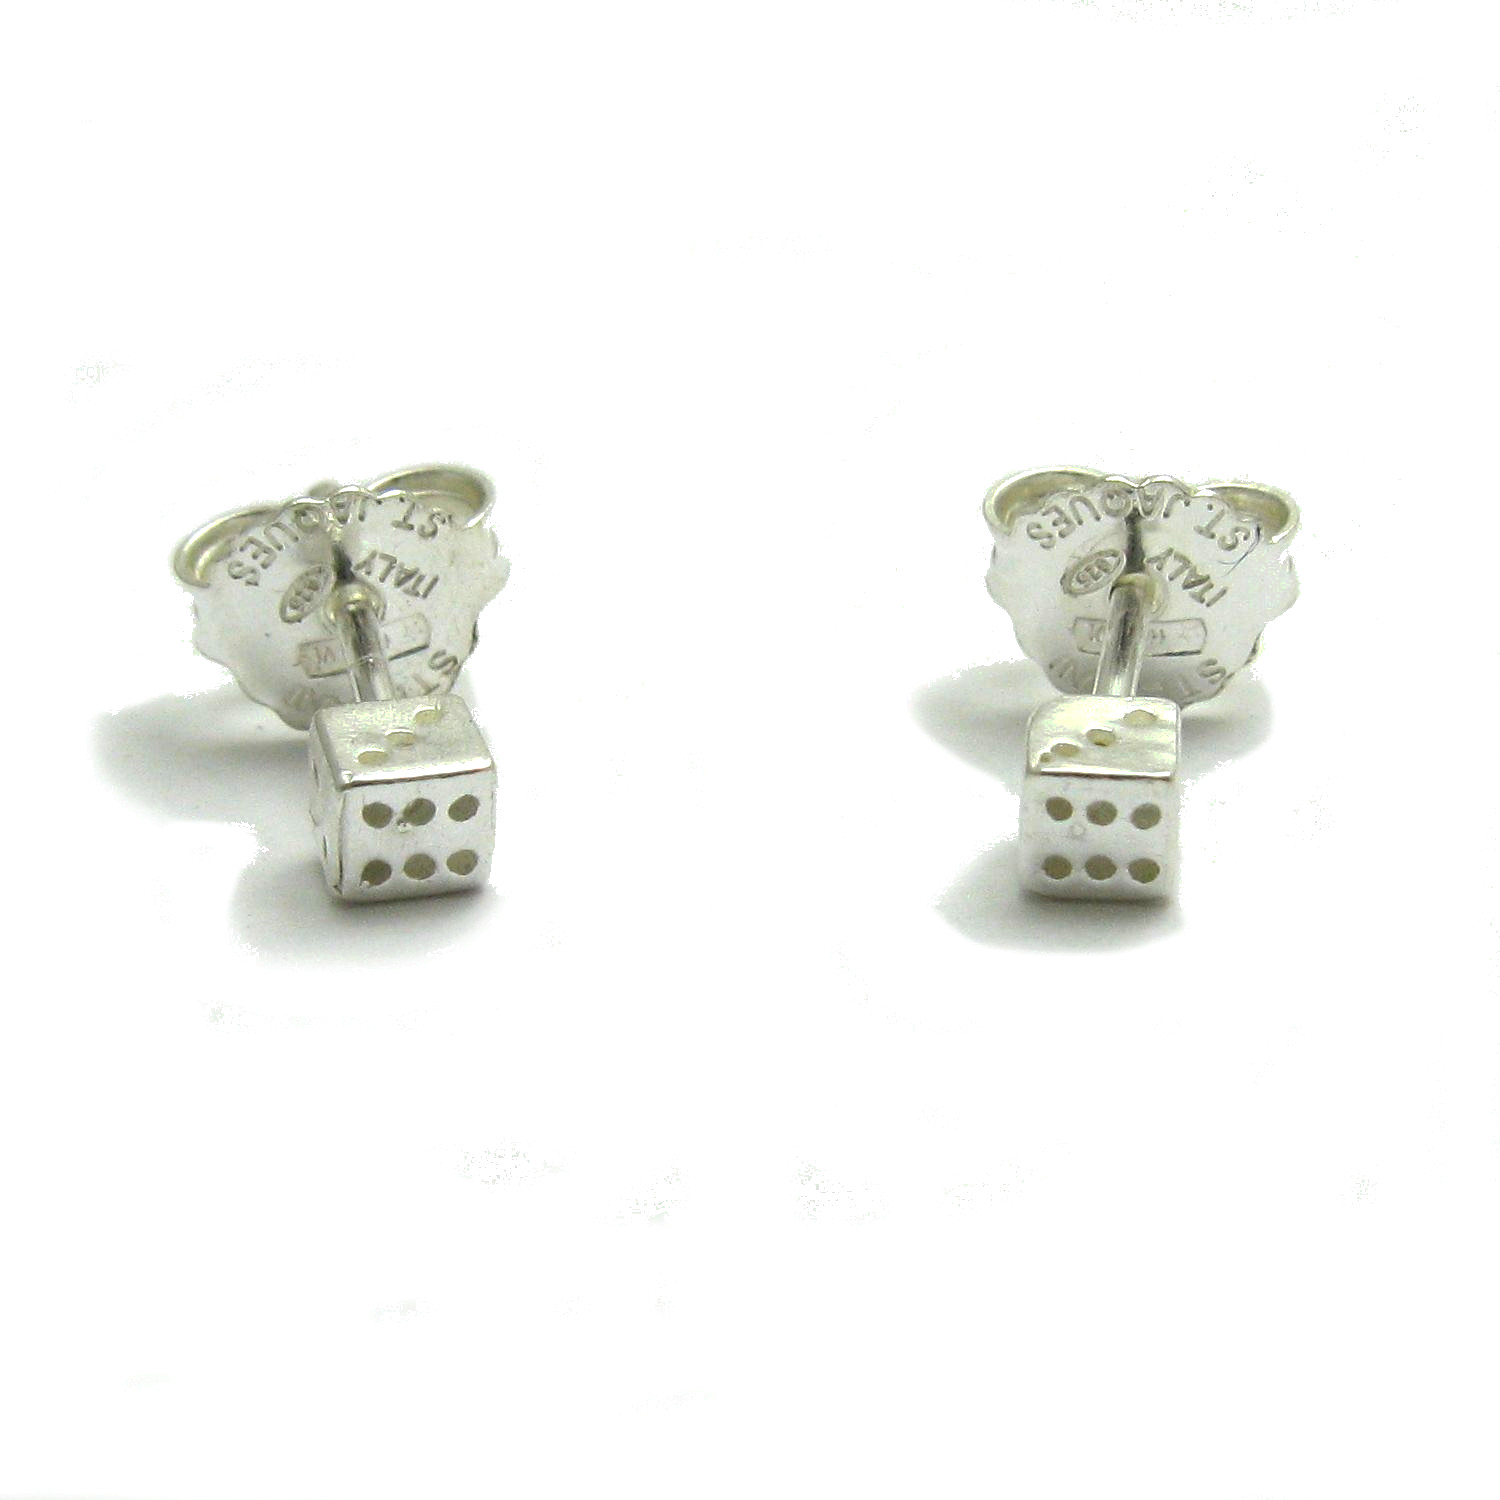 Silver earrings - E000713